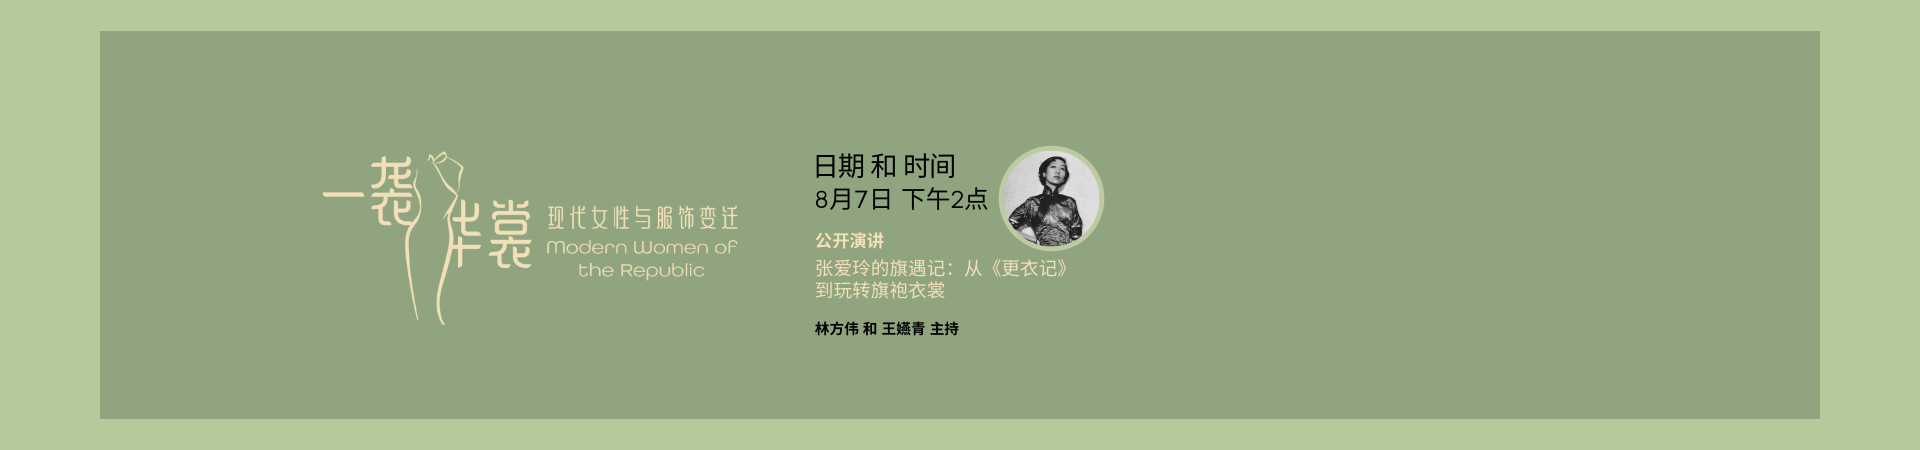 Public talk — Fashion chronicler and sartorial provocateur: Eileen Chang's use of cheongsam as her expressive and creative medium.